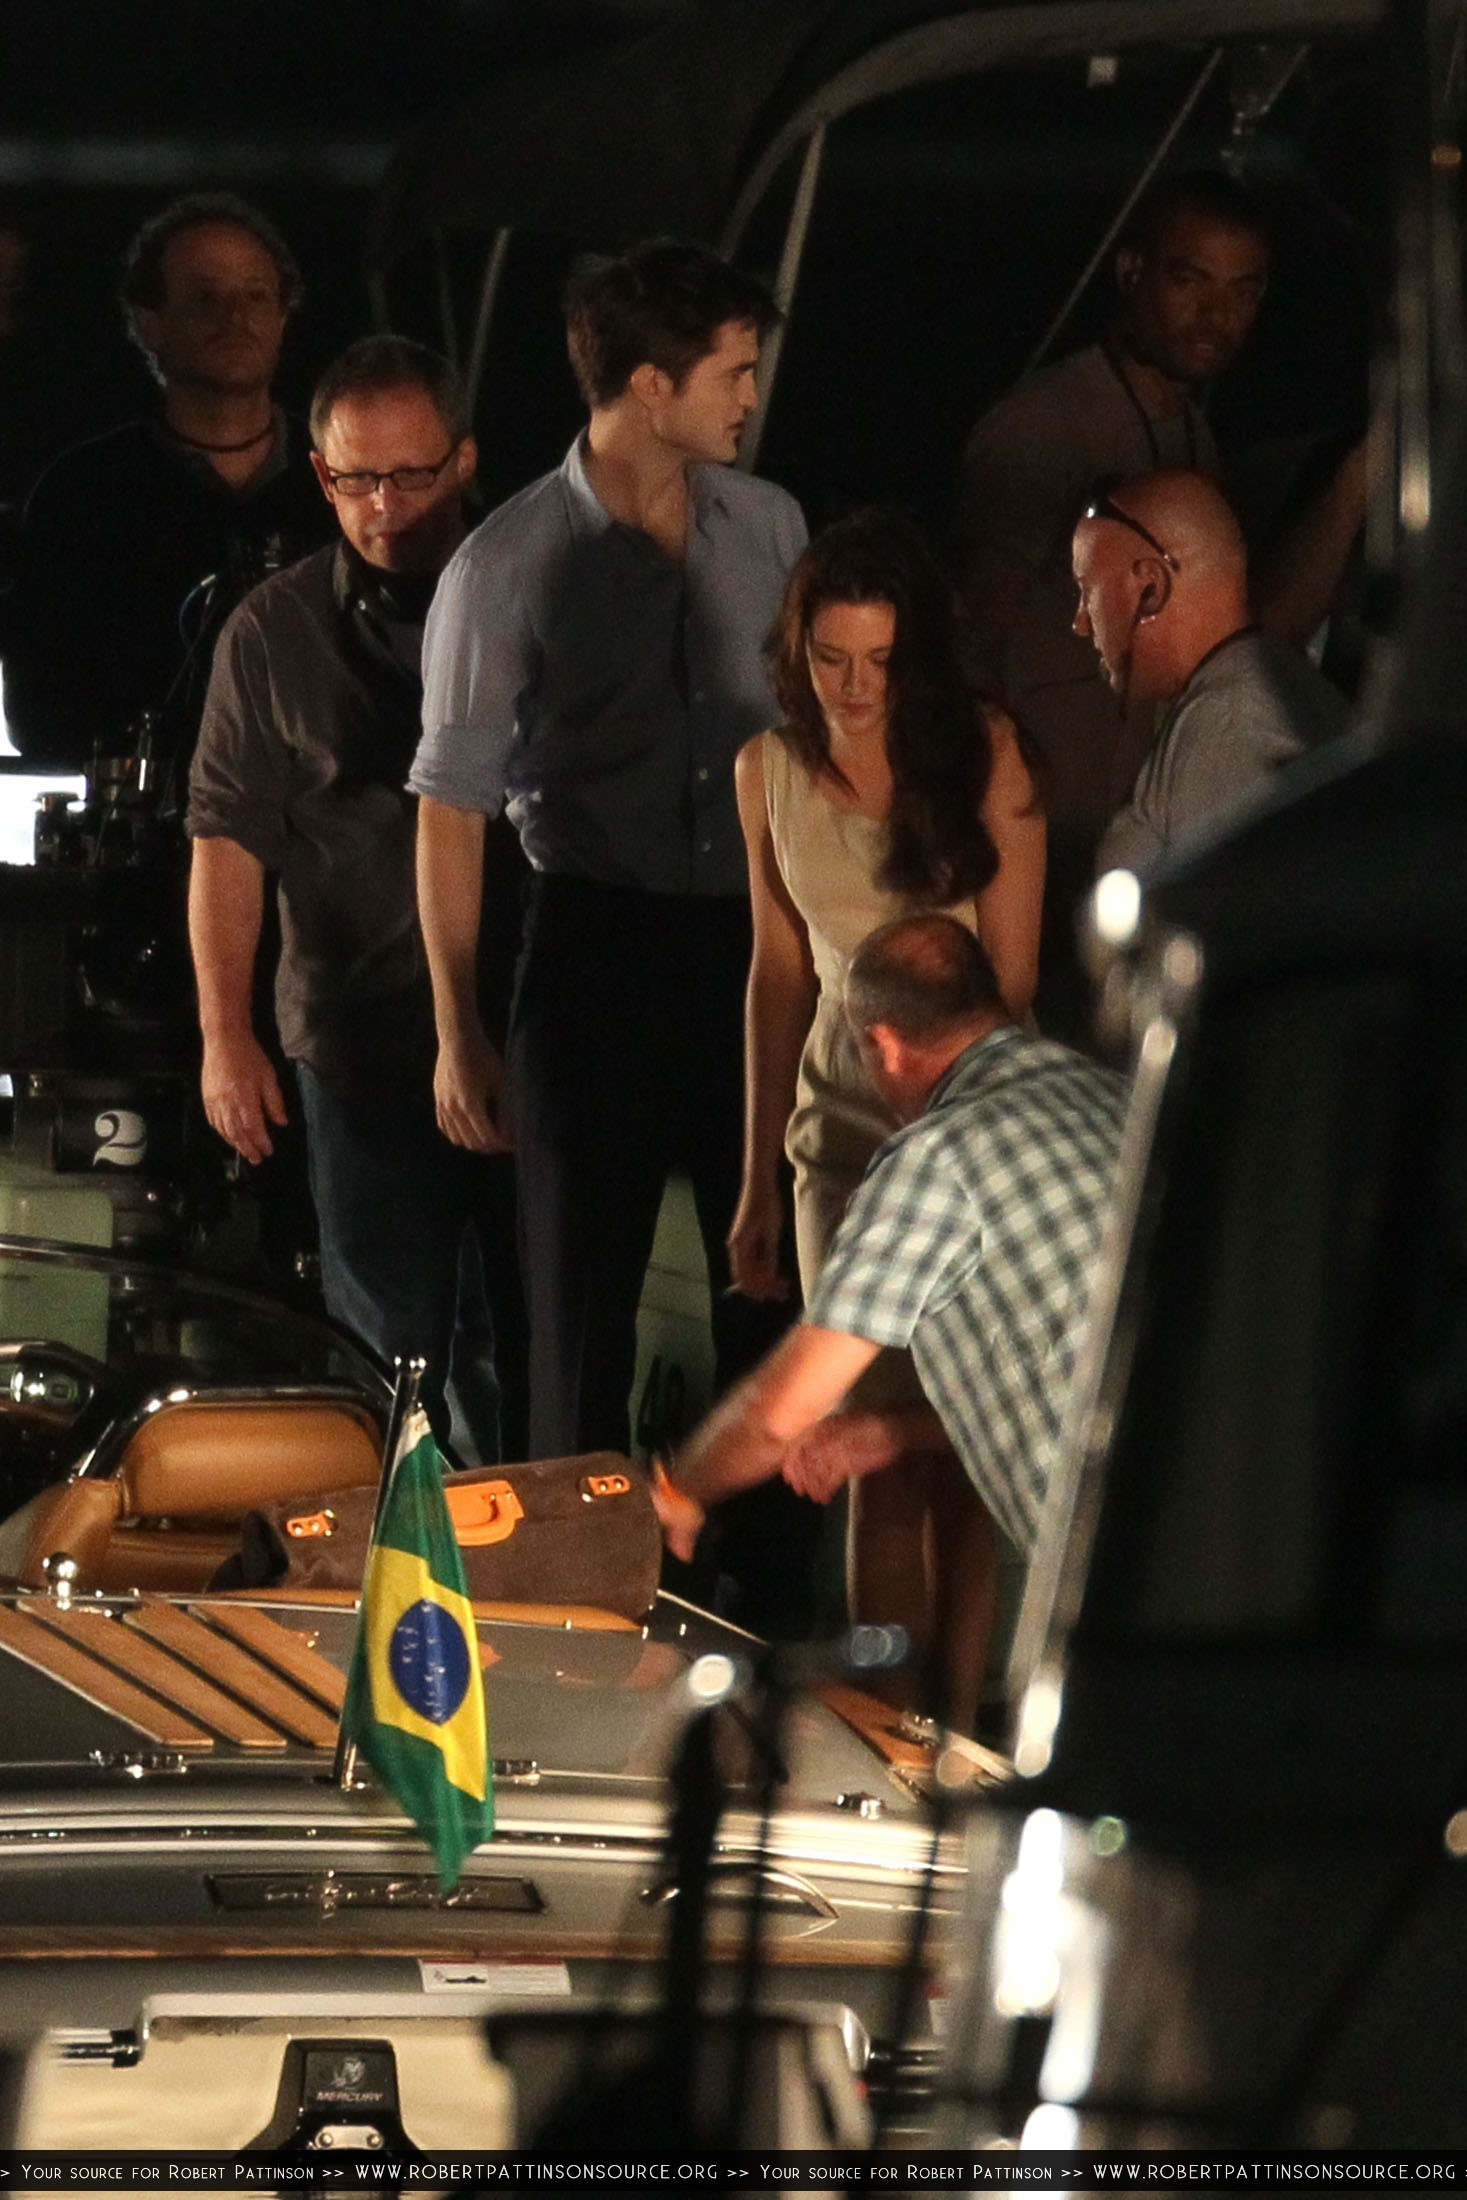 HQ's of the filming at the marina da Gloria and Lapa are After the Cut!